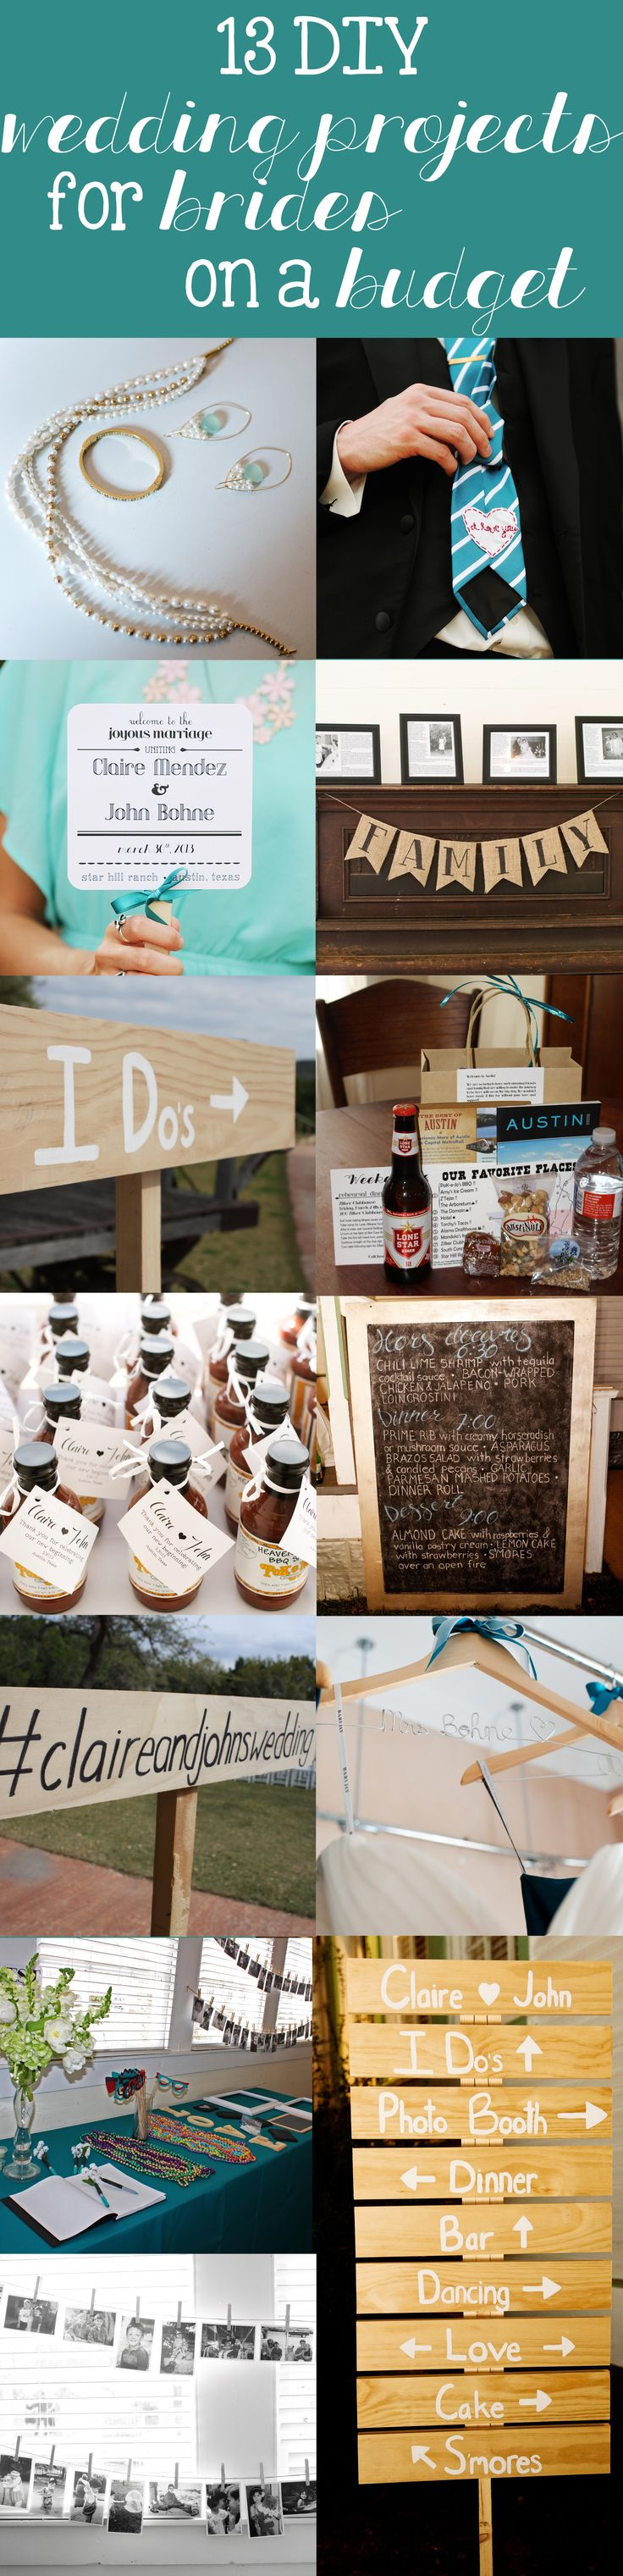 DIY wedding projects for brides on a budget! Decorations, favors, jewelry, and more! ThisHouseIsOurHome.blogspot.com